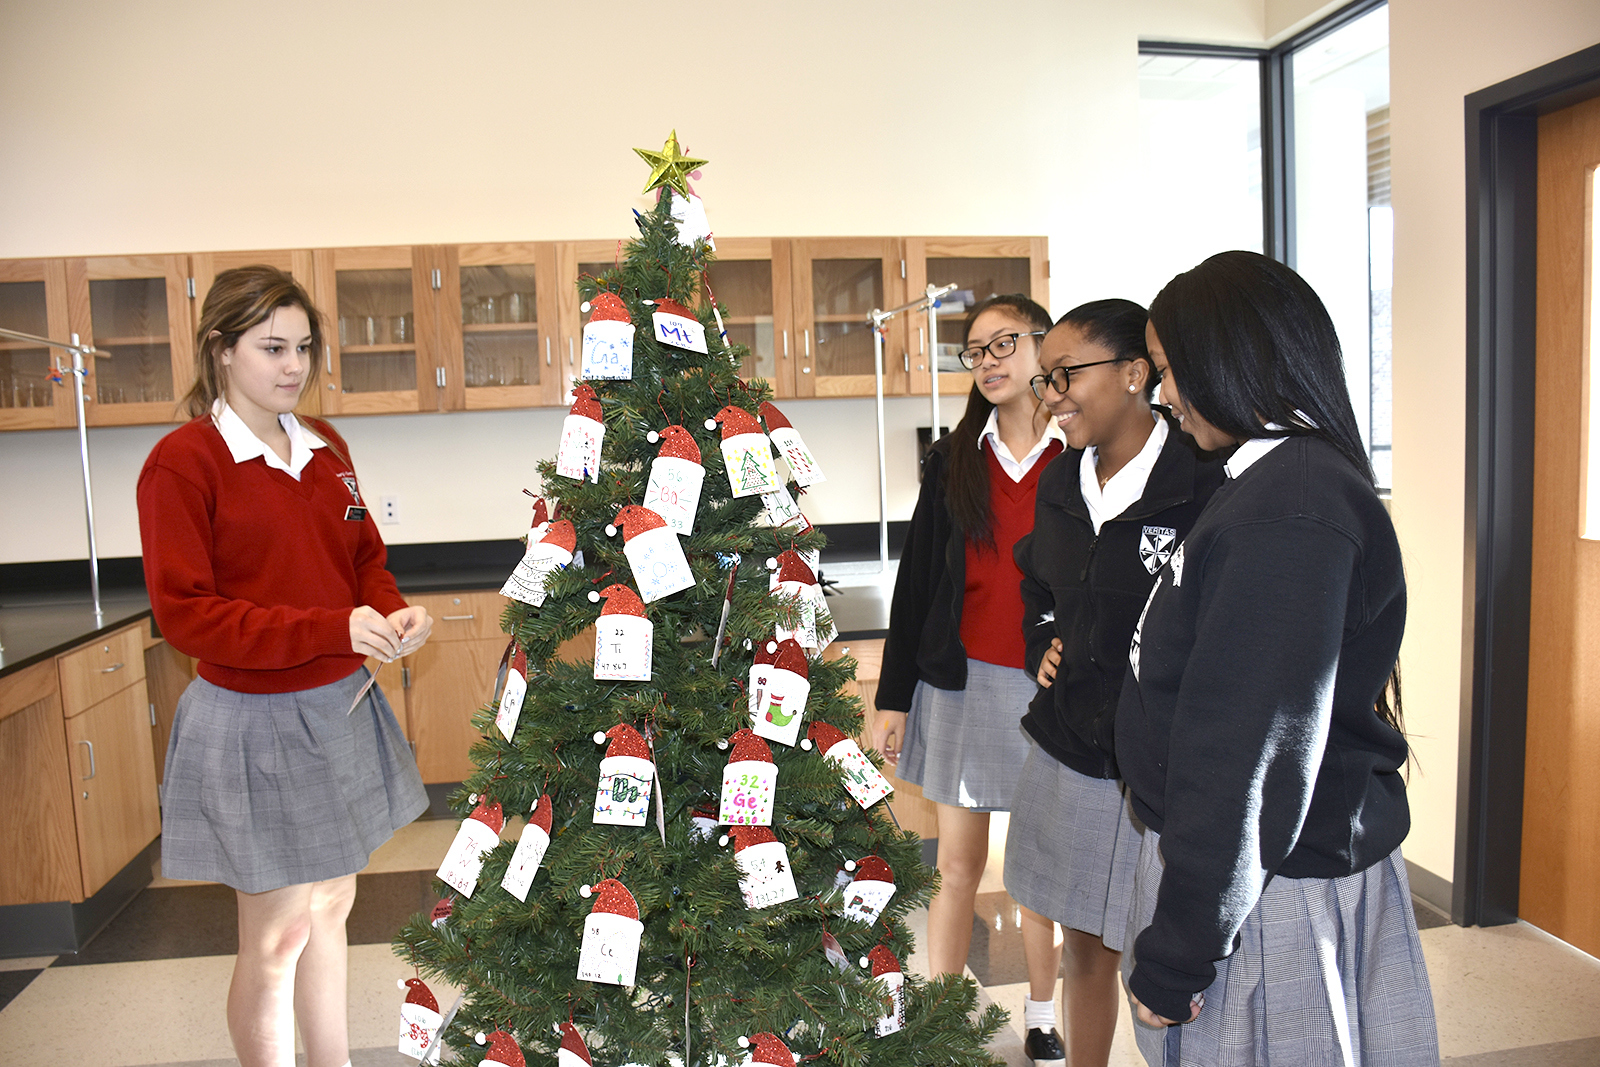 the week started with christmas carols during lunch on monday christmas sweaters and socks attire on tuesday wednesday photos with santa